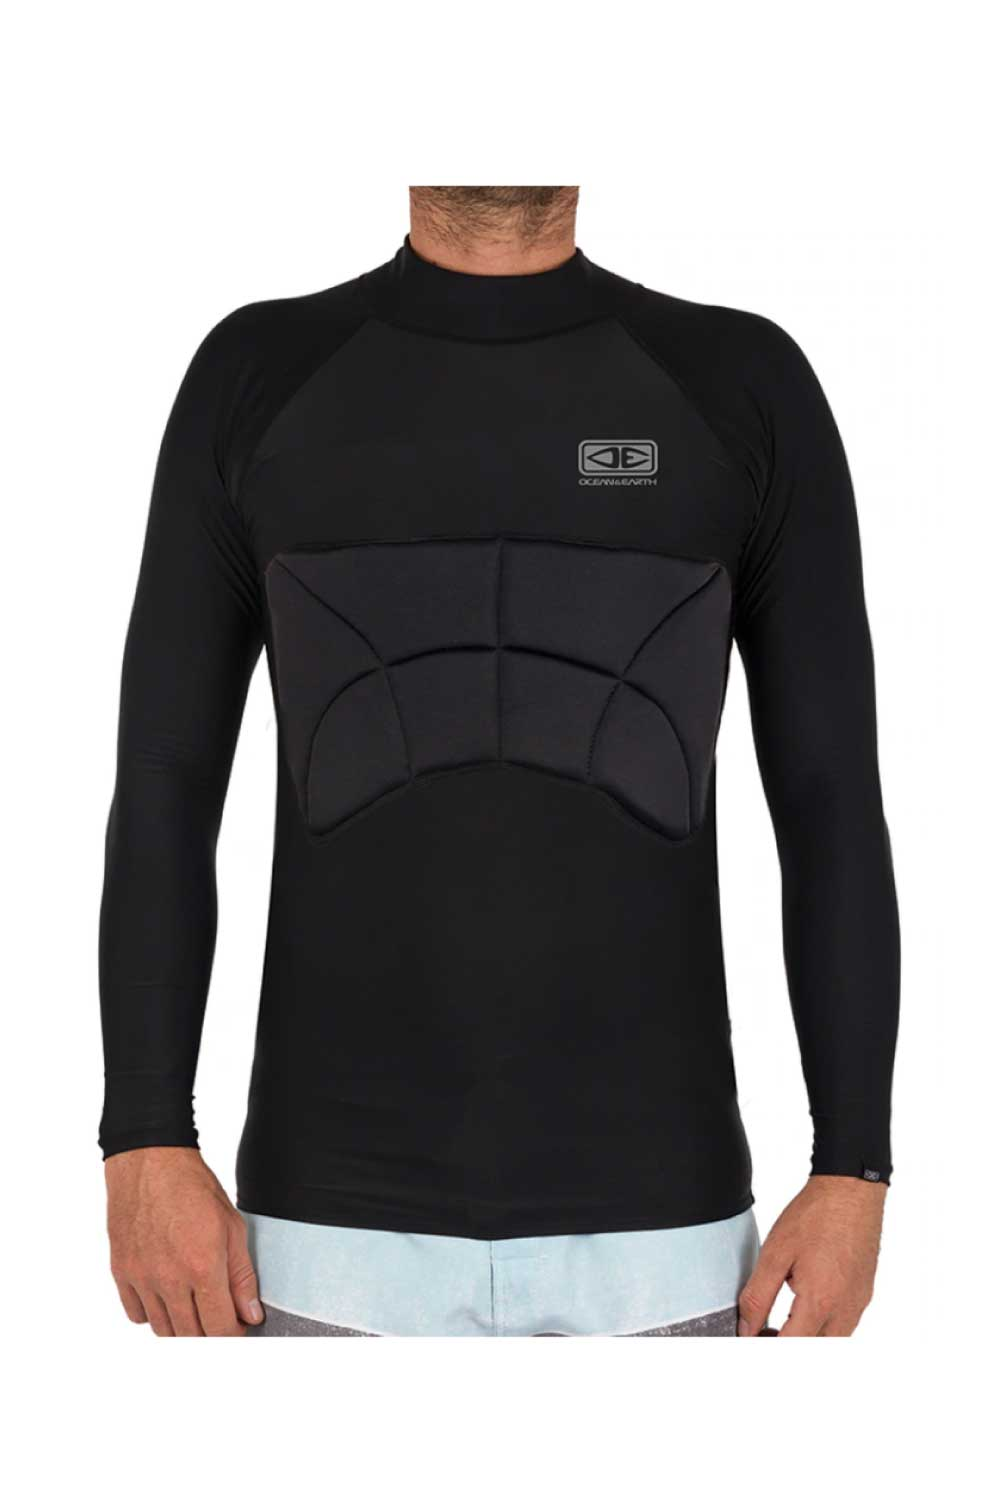 Ocean & Earth Rib Guard Padded Long Sleeve Surfing Vest